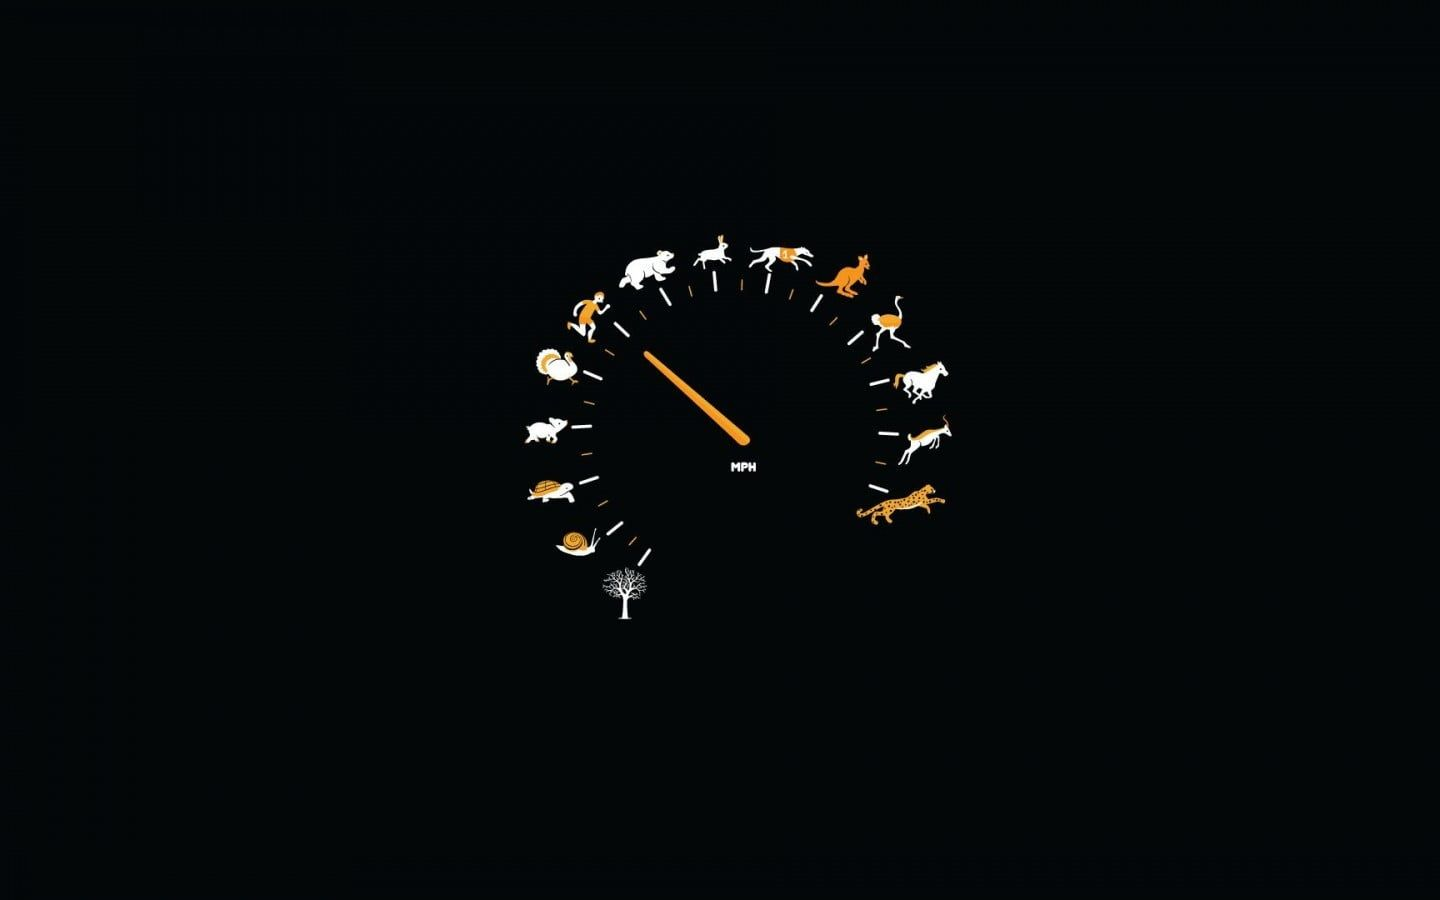 Zodiac Animals Illustration Humor Speedometer Minimalism 720p Wallpaper Hdwallpaper Desktop In 2020 Minimalist Wallpaper Funny Wallpaper Minimal Wallpaper